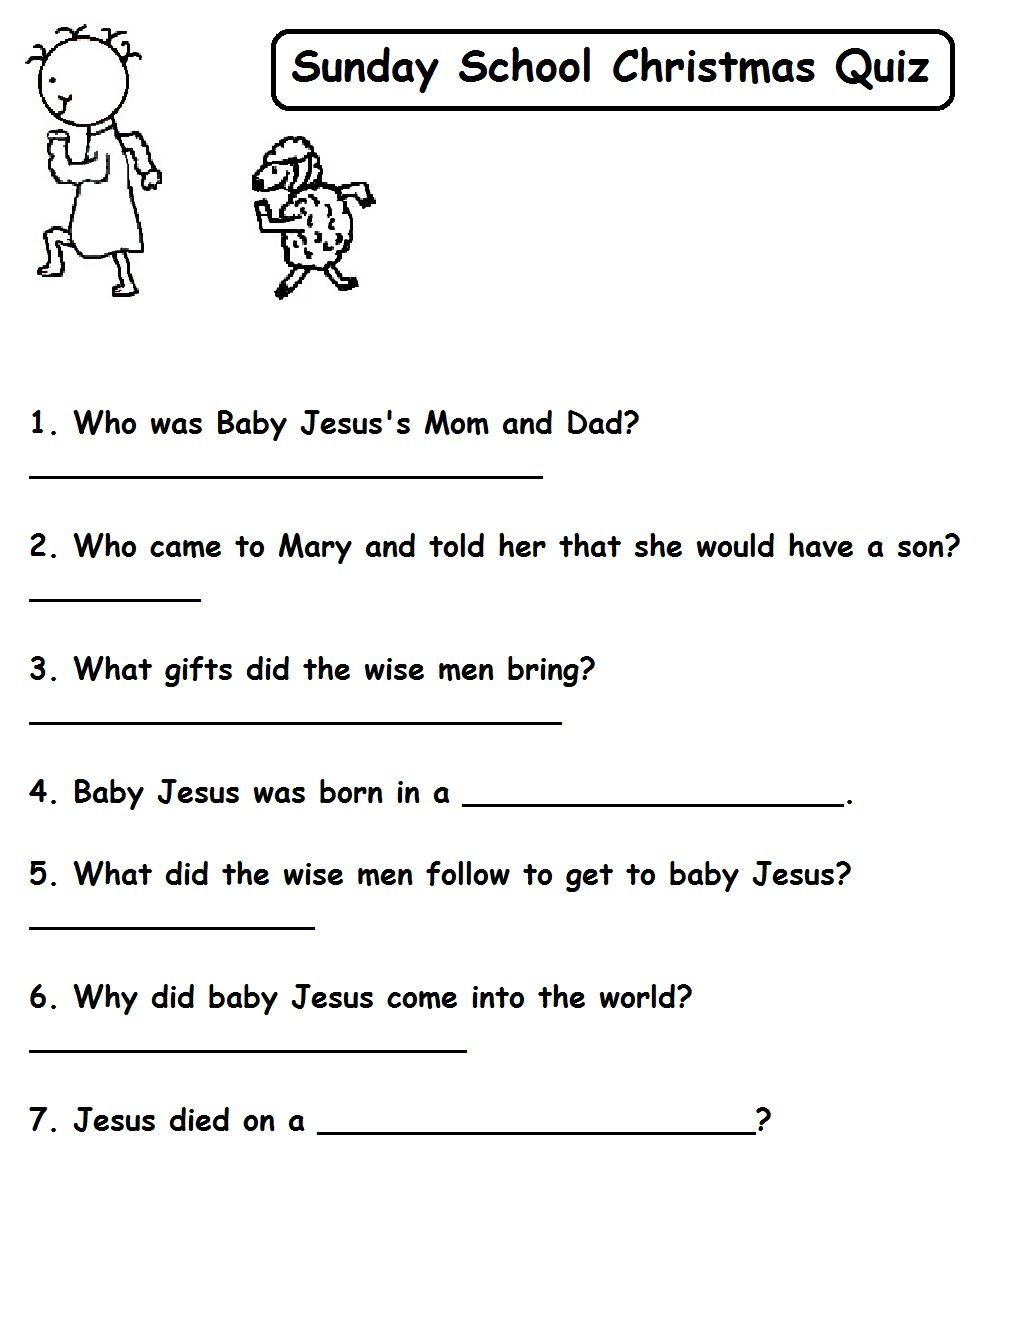 Attrayant Church House Collection Blog: Christmas Quizzes For Sunday School